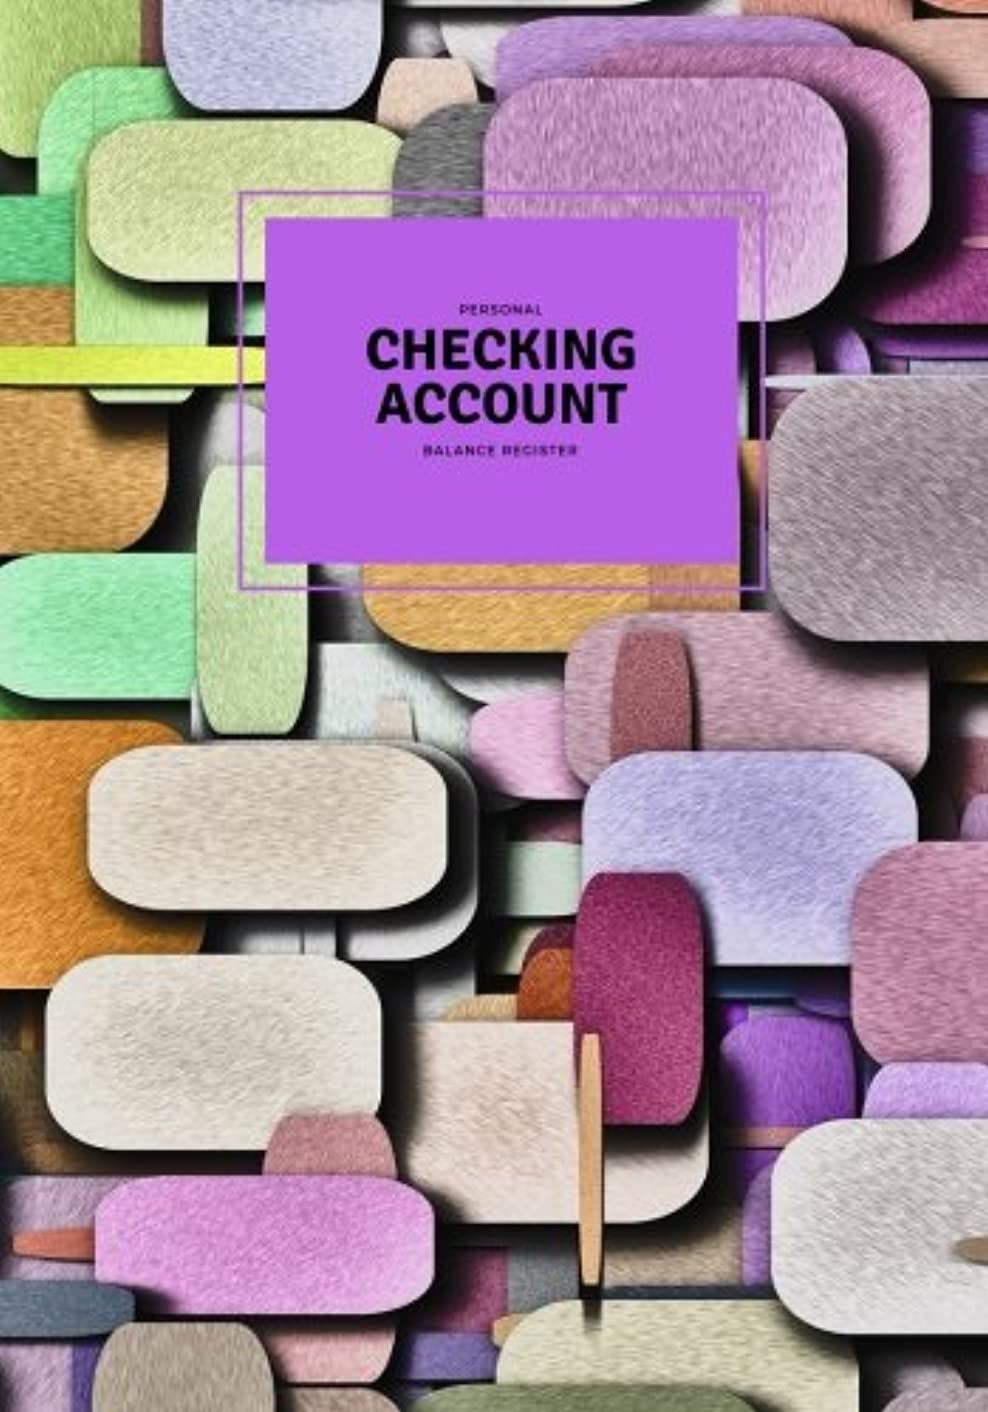 Personal Checking Account Balance Register: 6 Column Personal Checking Account Payment Record Tracker | Manage Cash Going In & Out | Simple Accounting ... (Personal Money Management) (Volume 11)